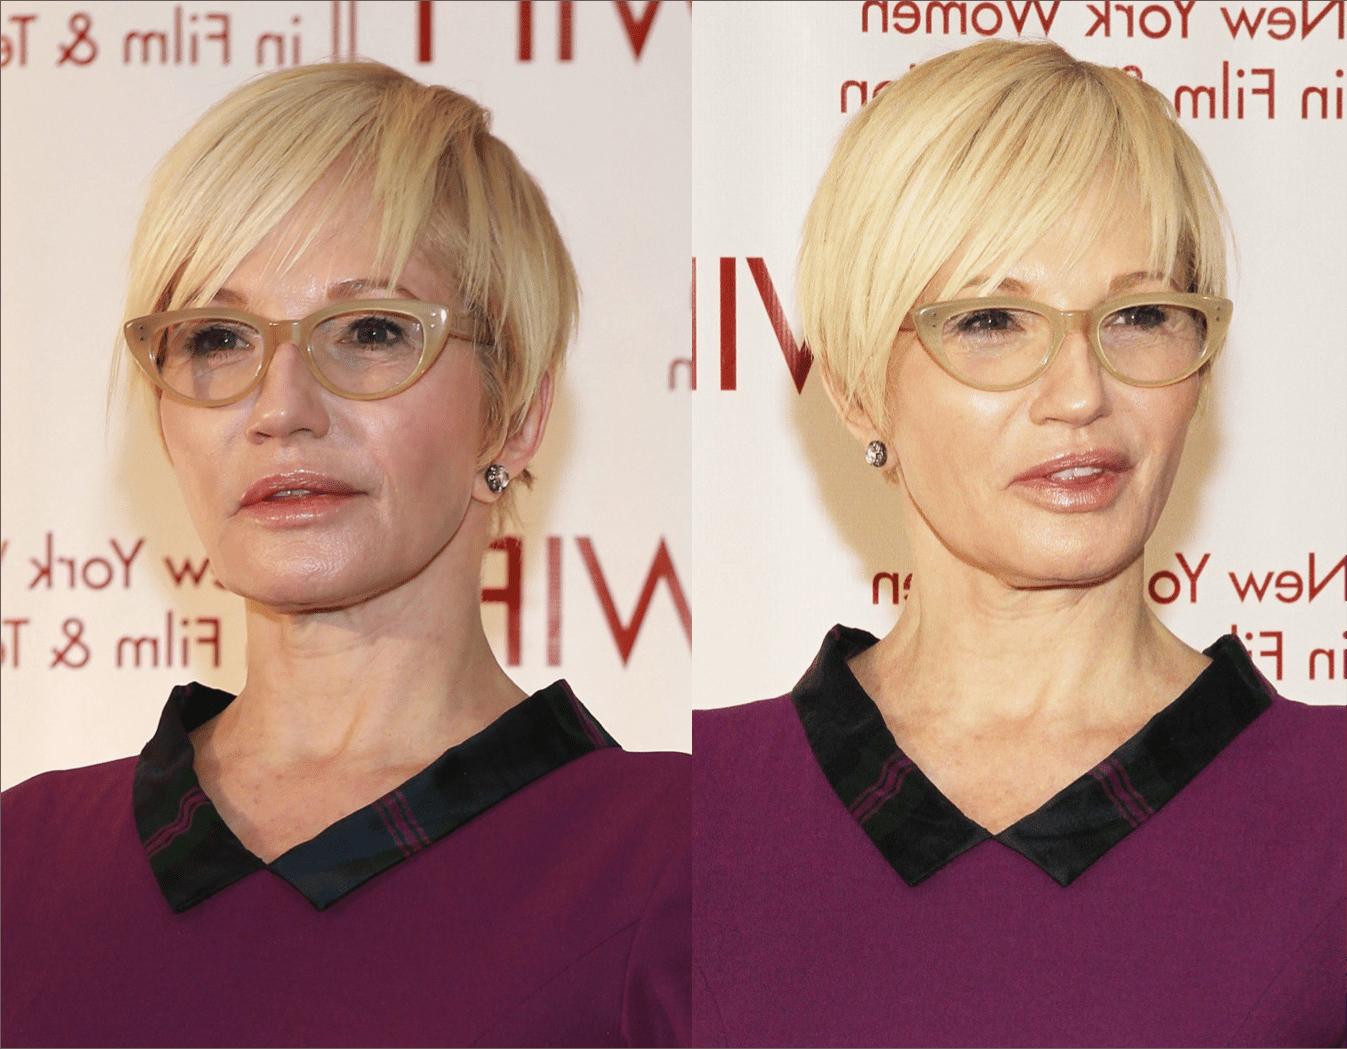 Short Hairstyles For Women With Round Faces And Glasses Beautiful 34 In Short Hairstyles For Round Faces And Glasses (View 21 of 25)